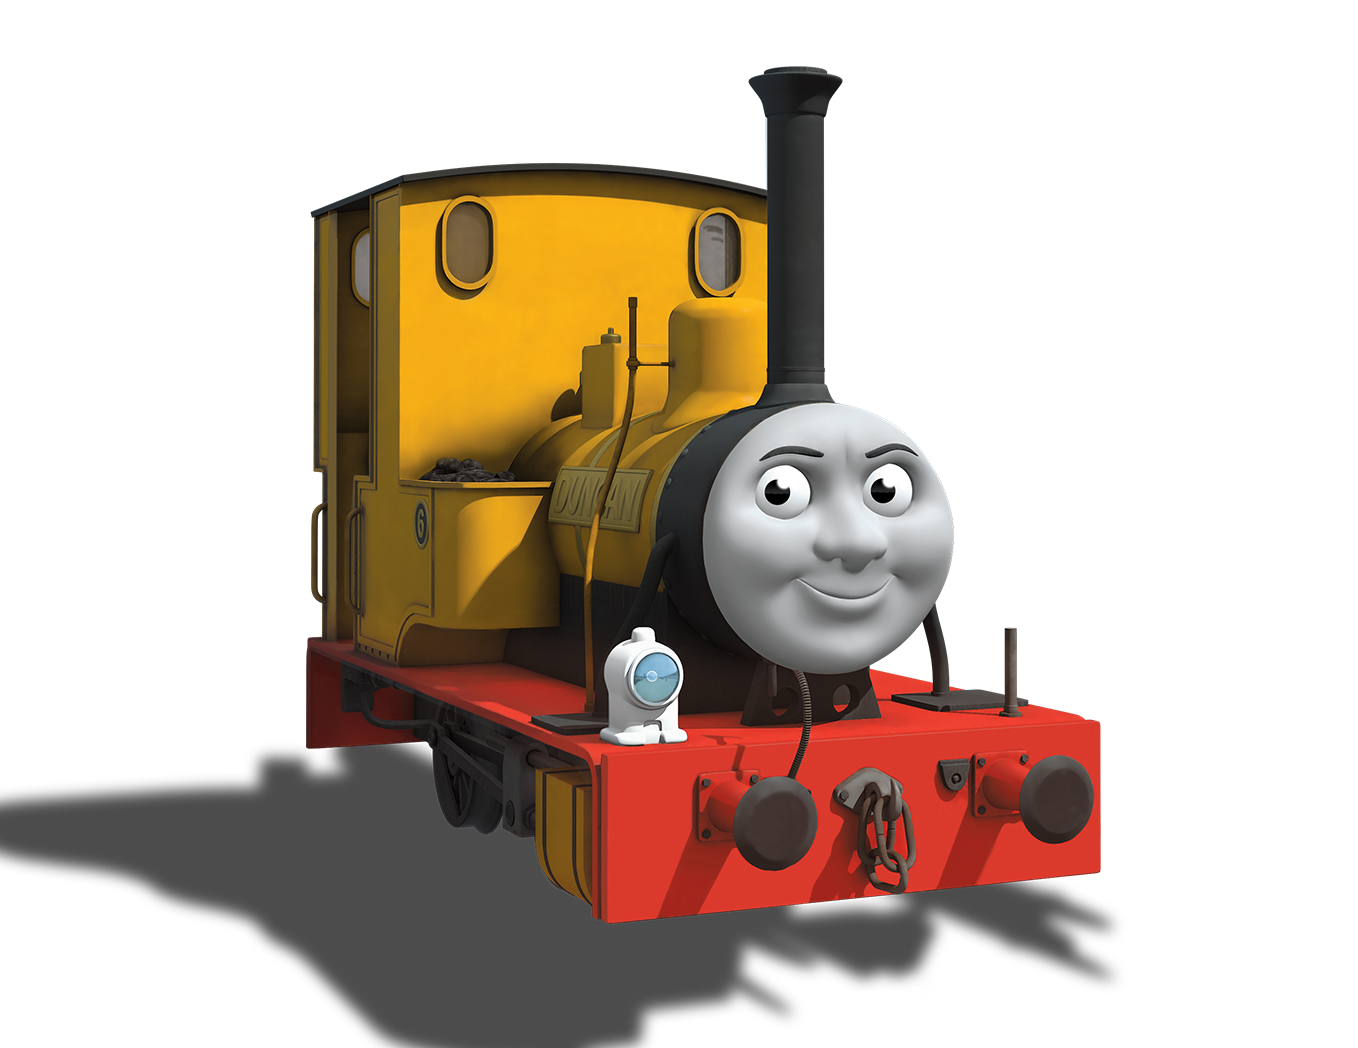 Engine clipart thomas train. Image cgiduncanpromo png the